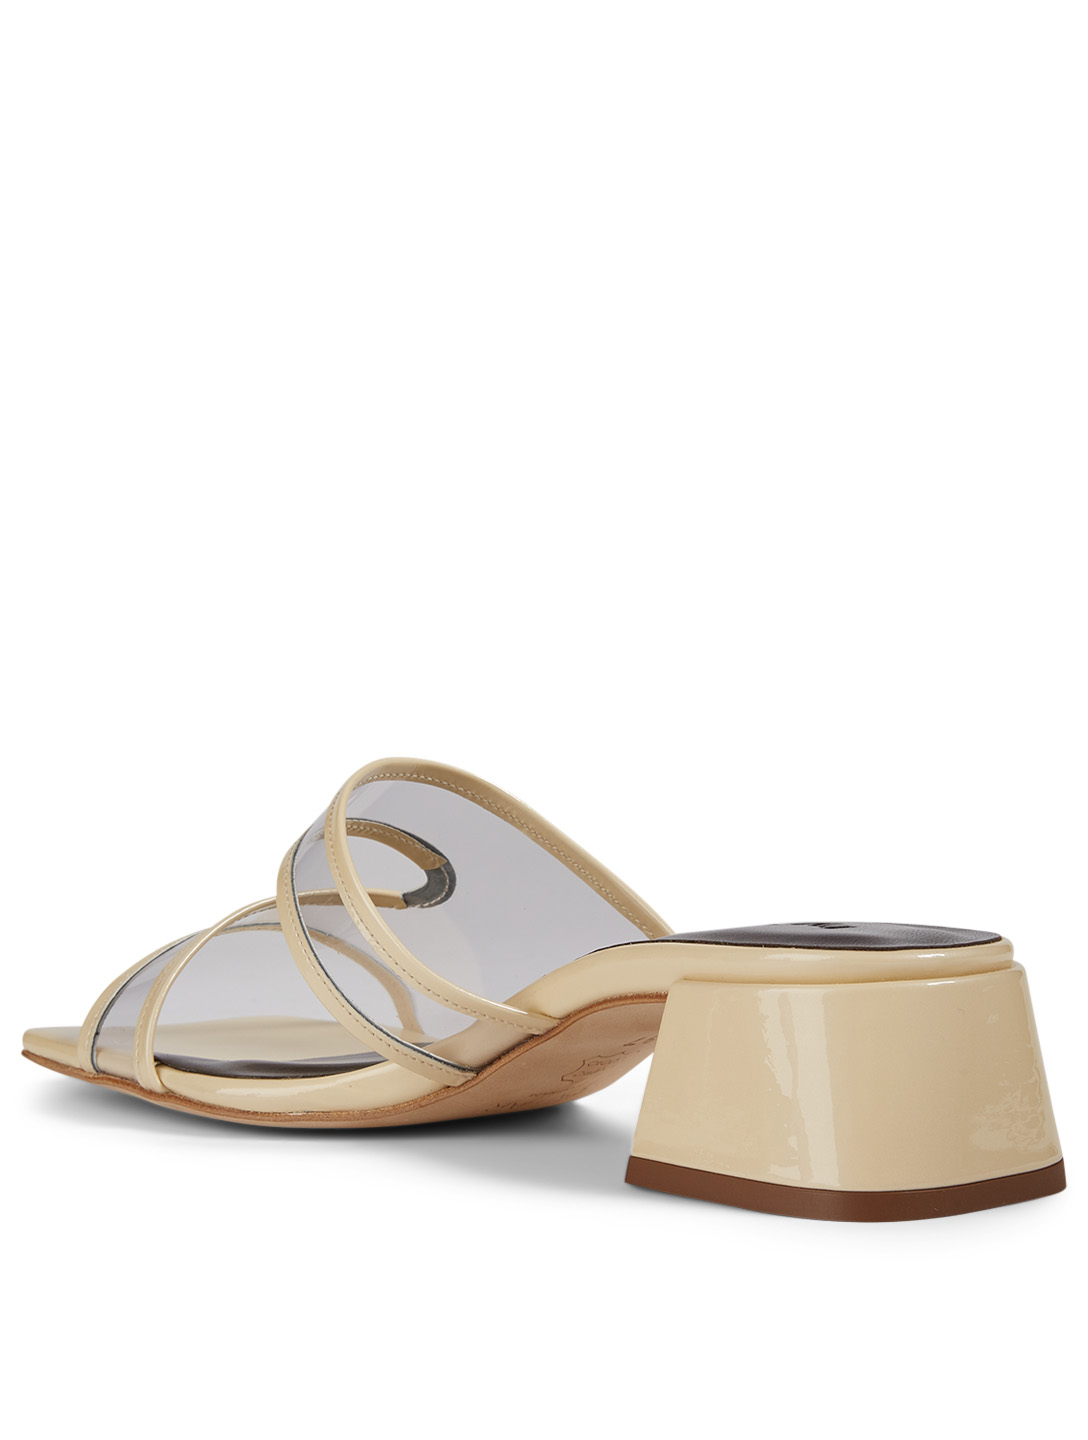 BY FAR Lola Patent Leather And PVC Heeled Sandals Women's White